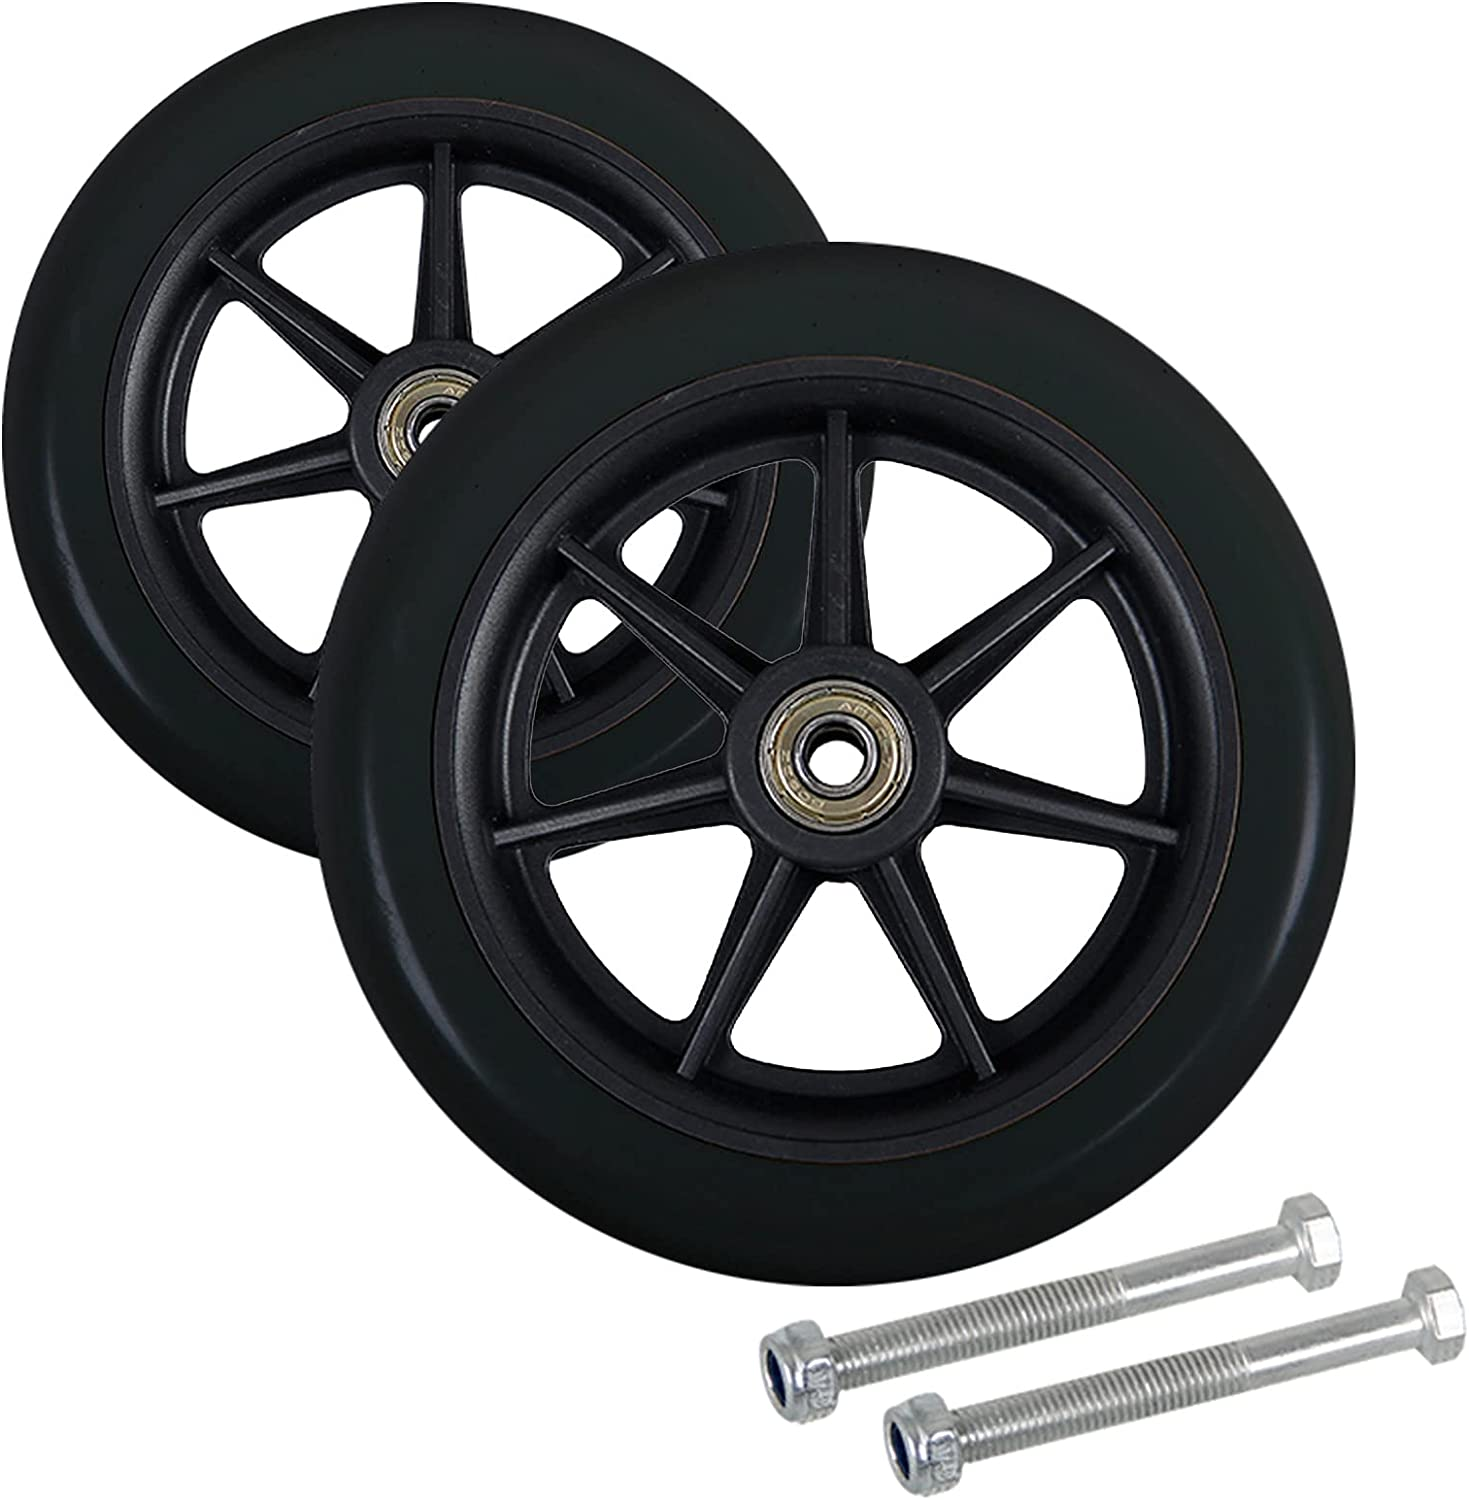 XIAOYUE Replacement Max 41% OFF 6-inch Walker Solid Wheels Gorgeous Wheelchair Black